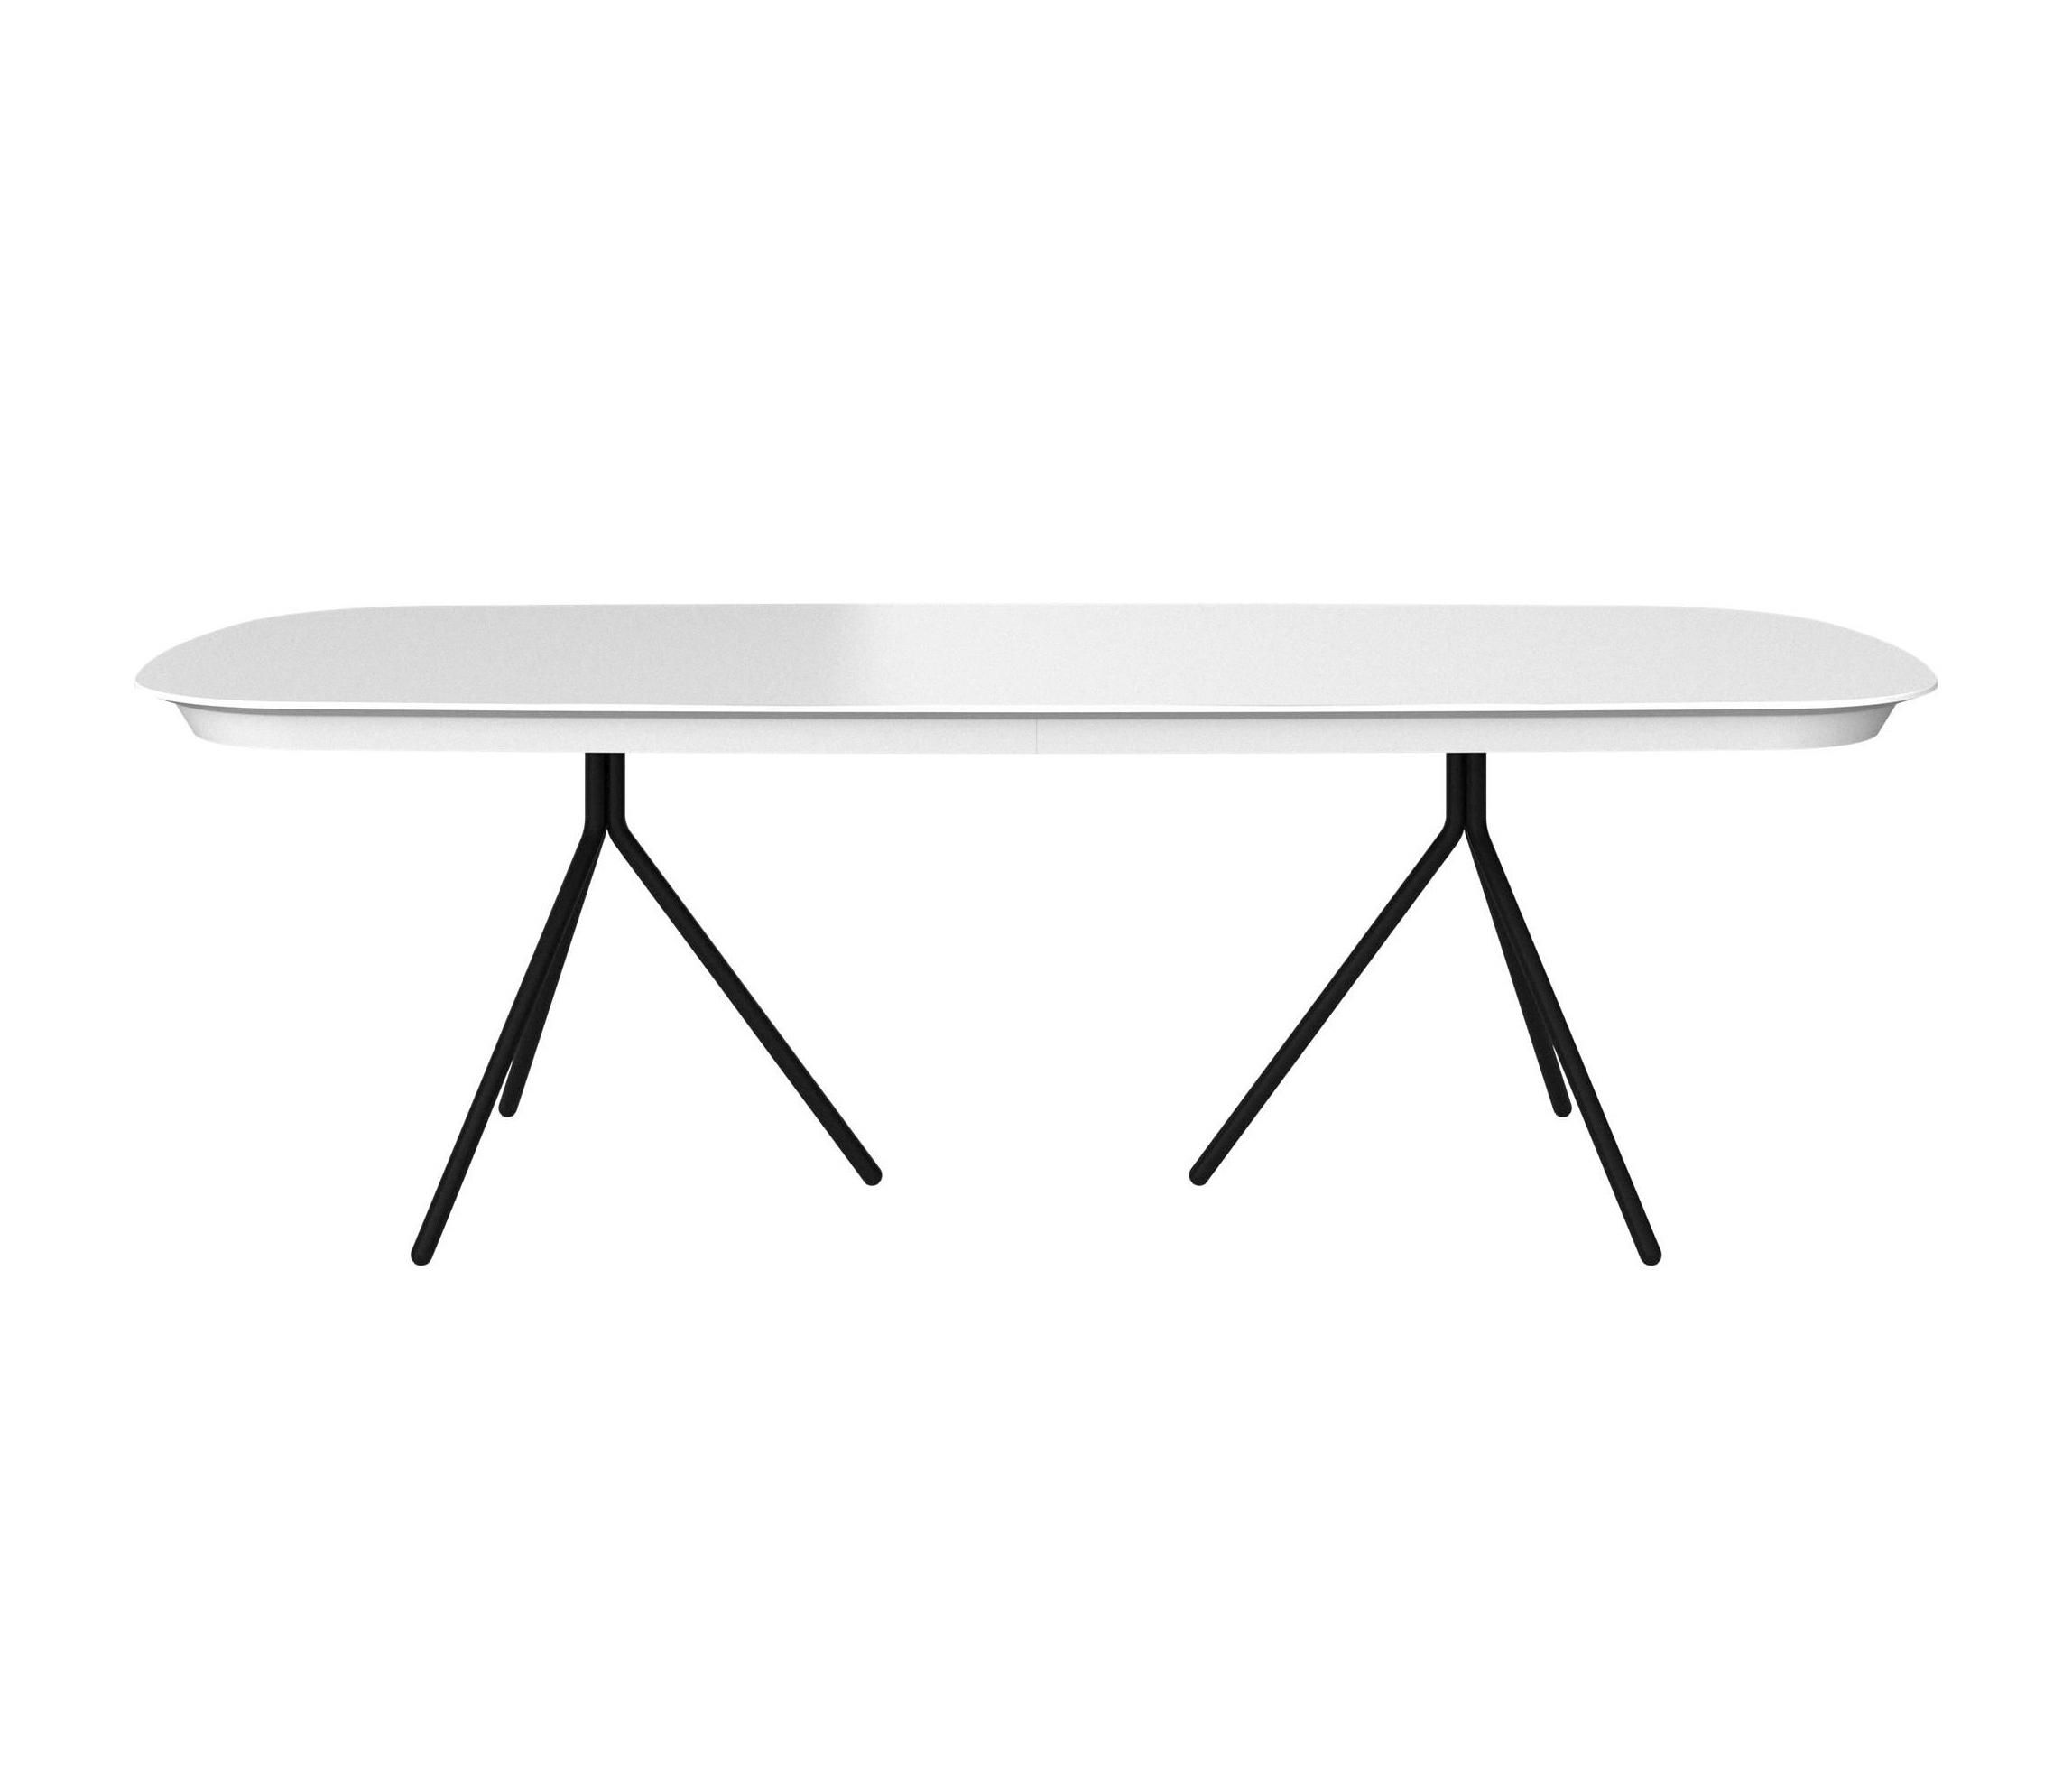 Ottawa Table Ov03 With Supplementary Tabletop Dining Tables From Boconcept Architonic Furniture Design Furniture Sofa Design